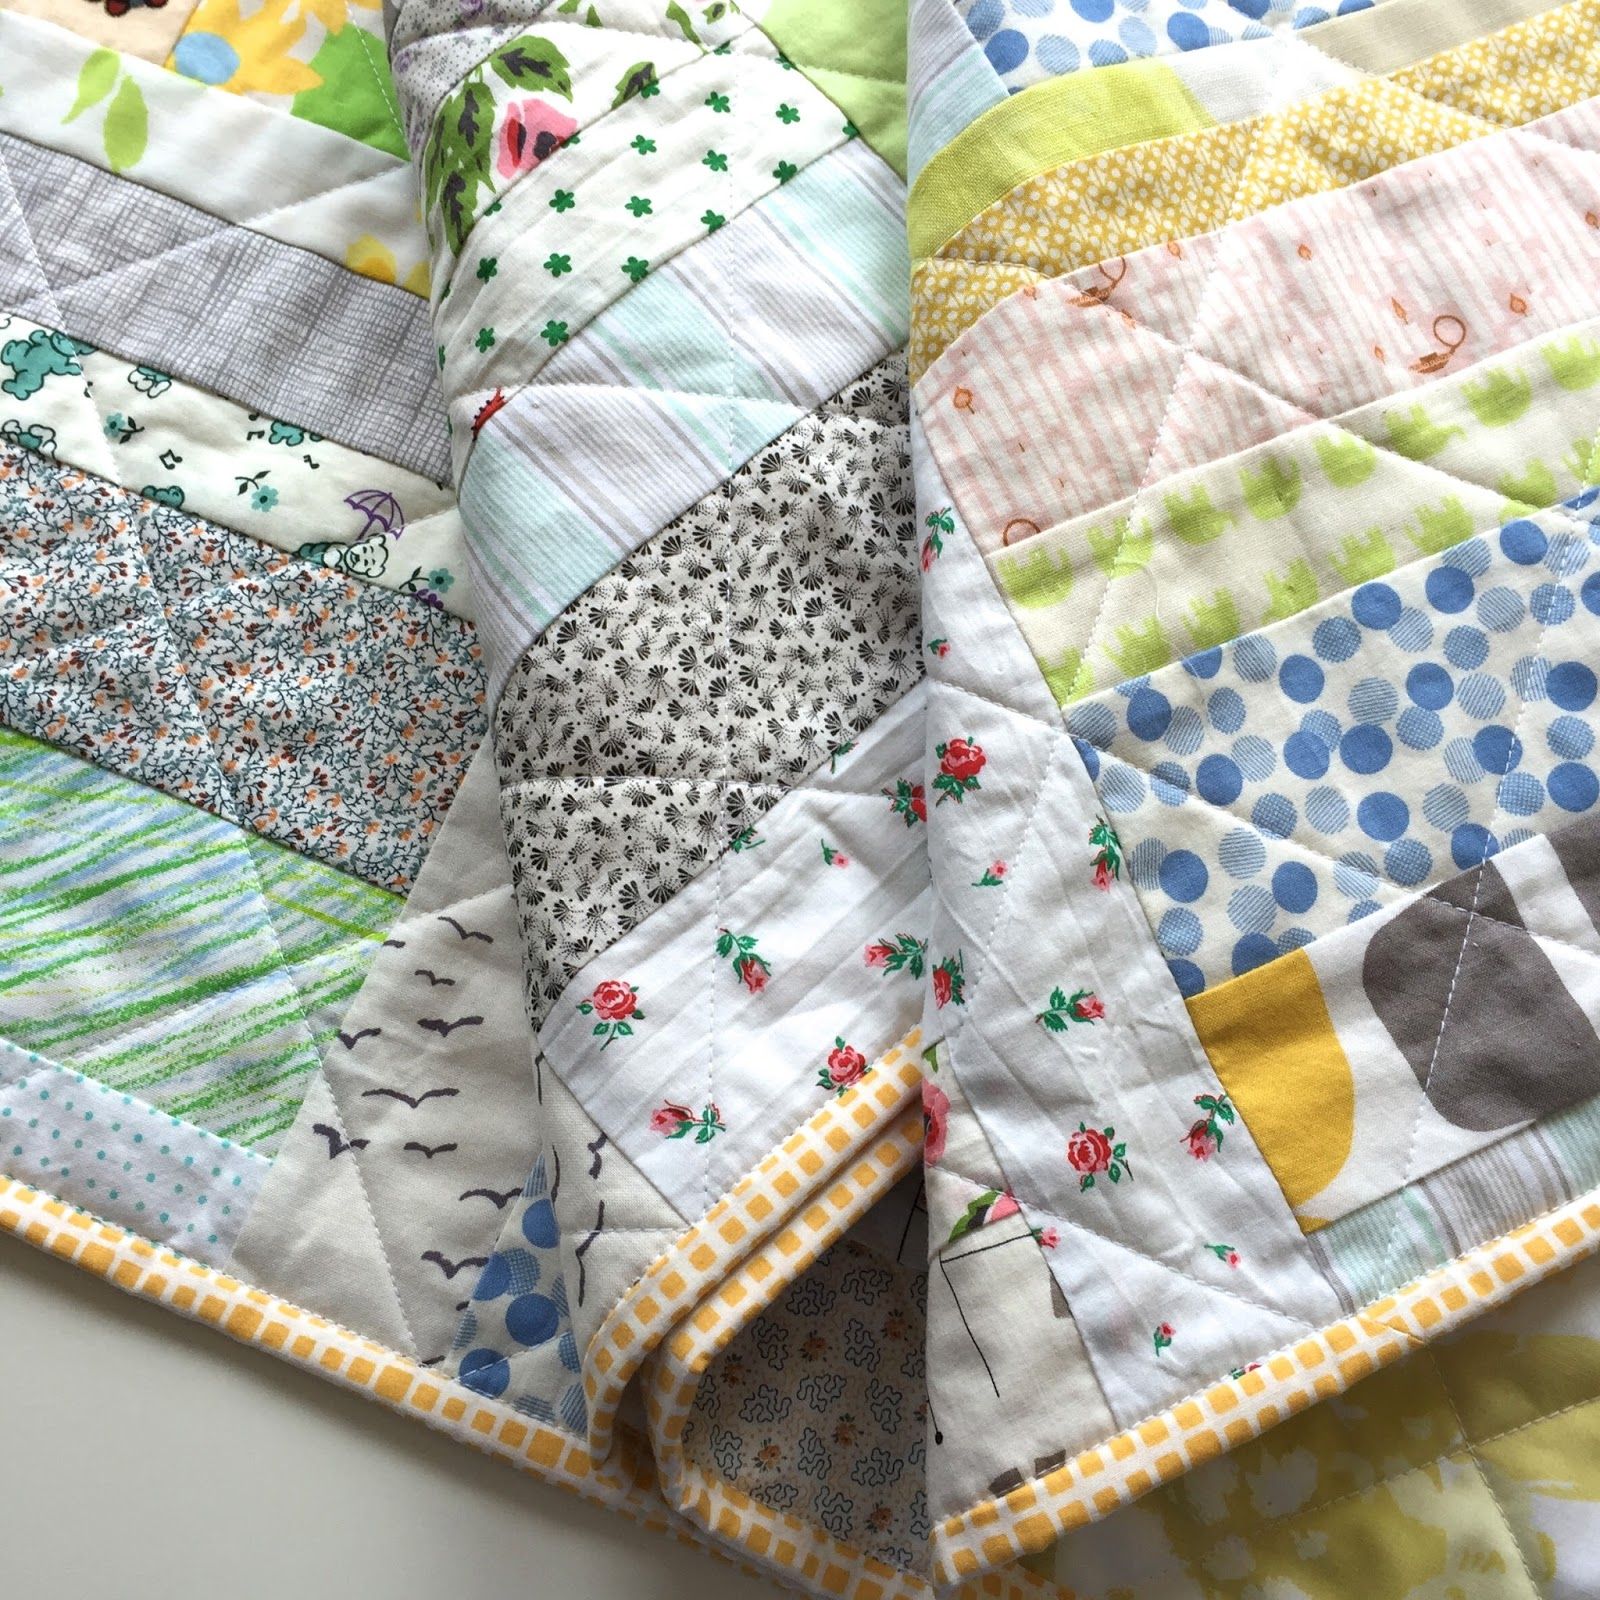 salty oat modern handmade quilts sunday morning lowvolume throw  - i've really loved every quilt i've made using patterns from sunday morningquilts (see my up up and away quilt and my improv slab quilt) and thislatest